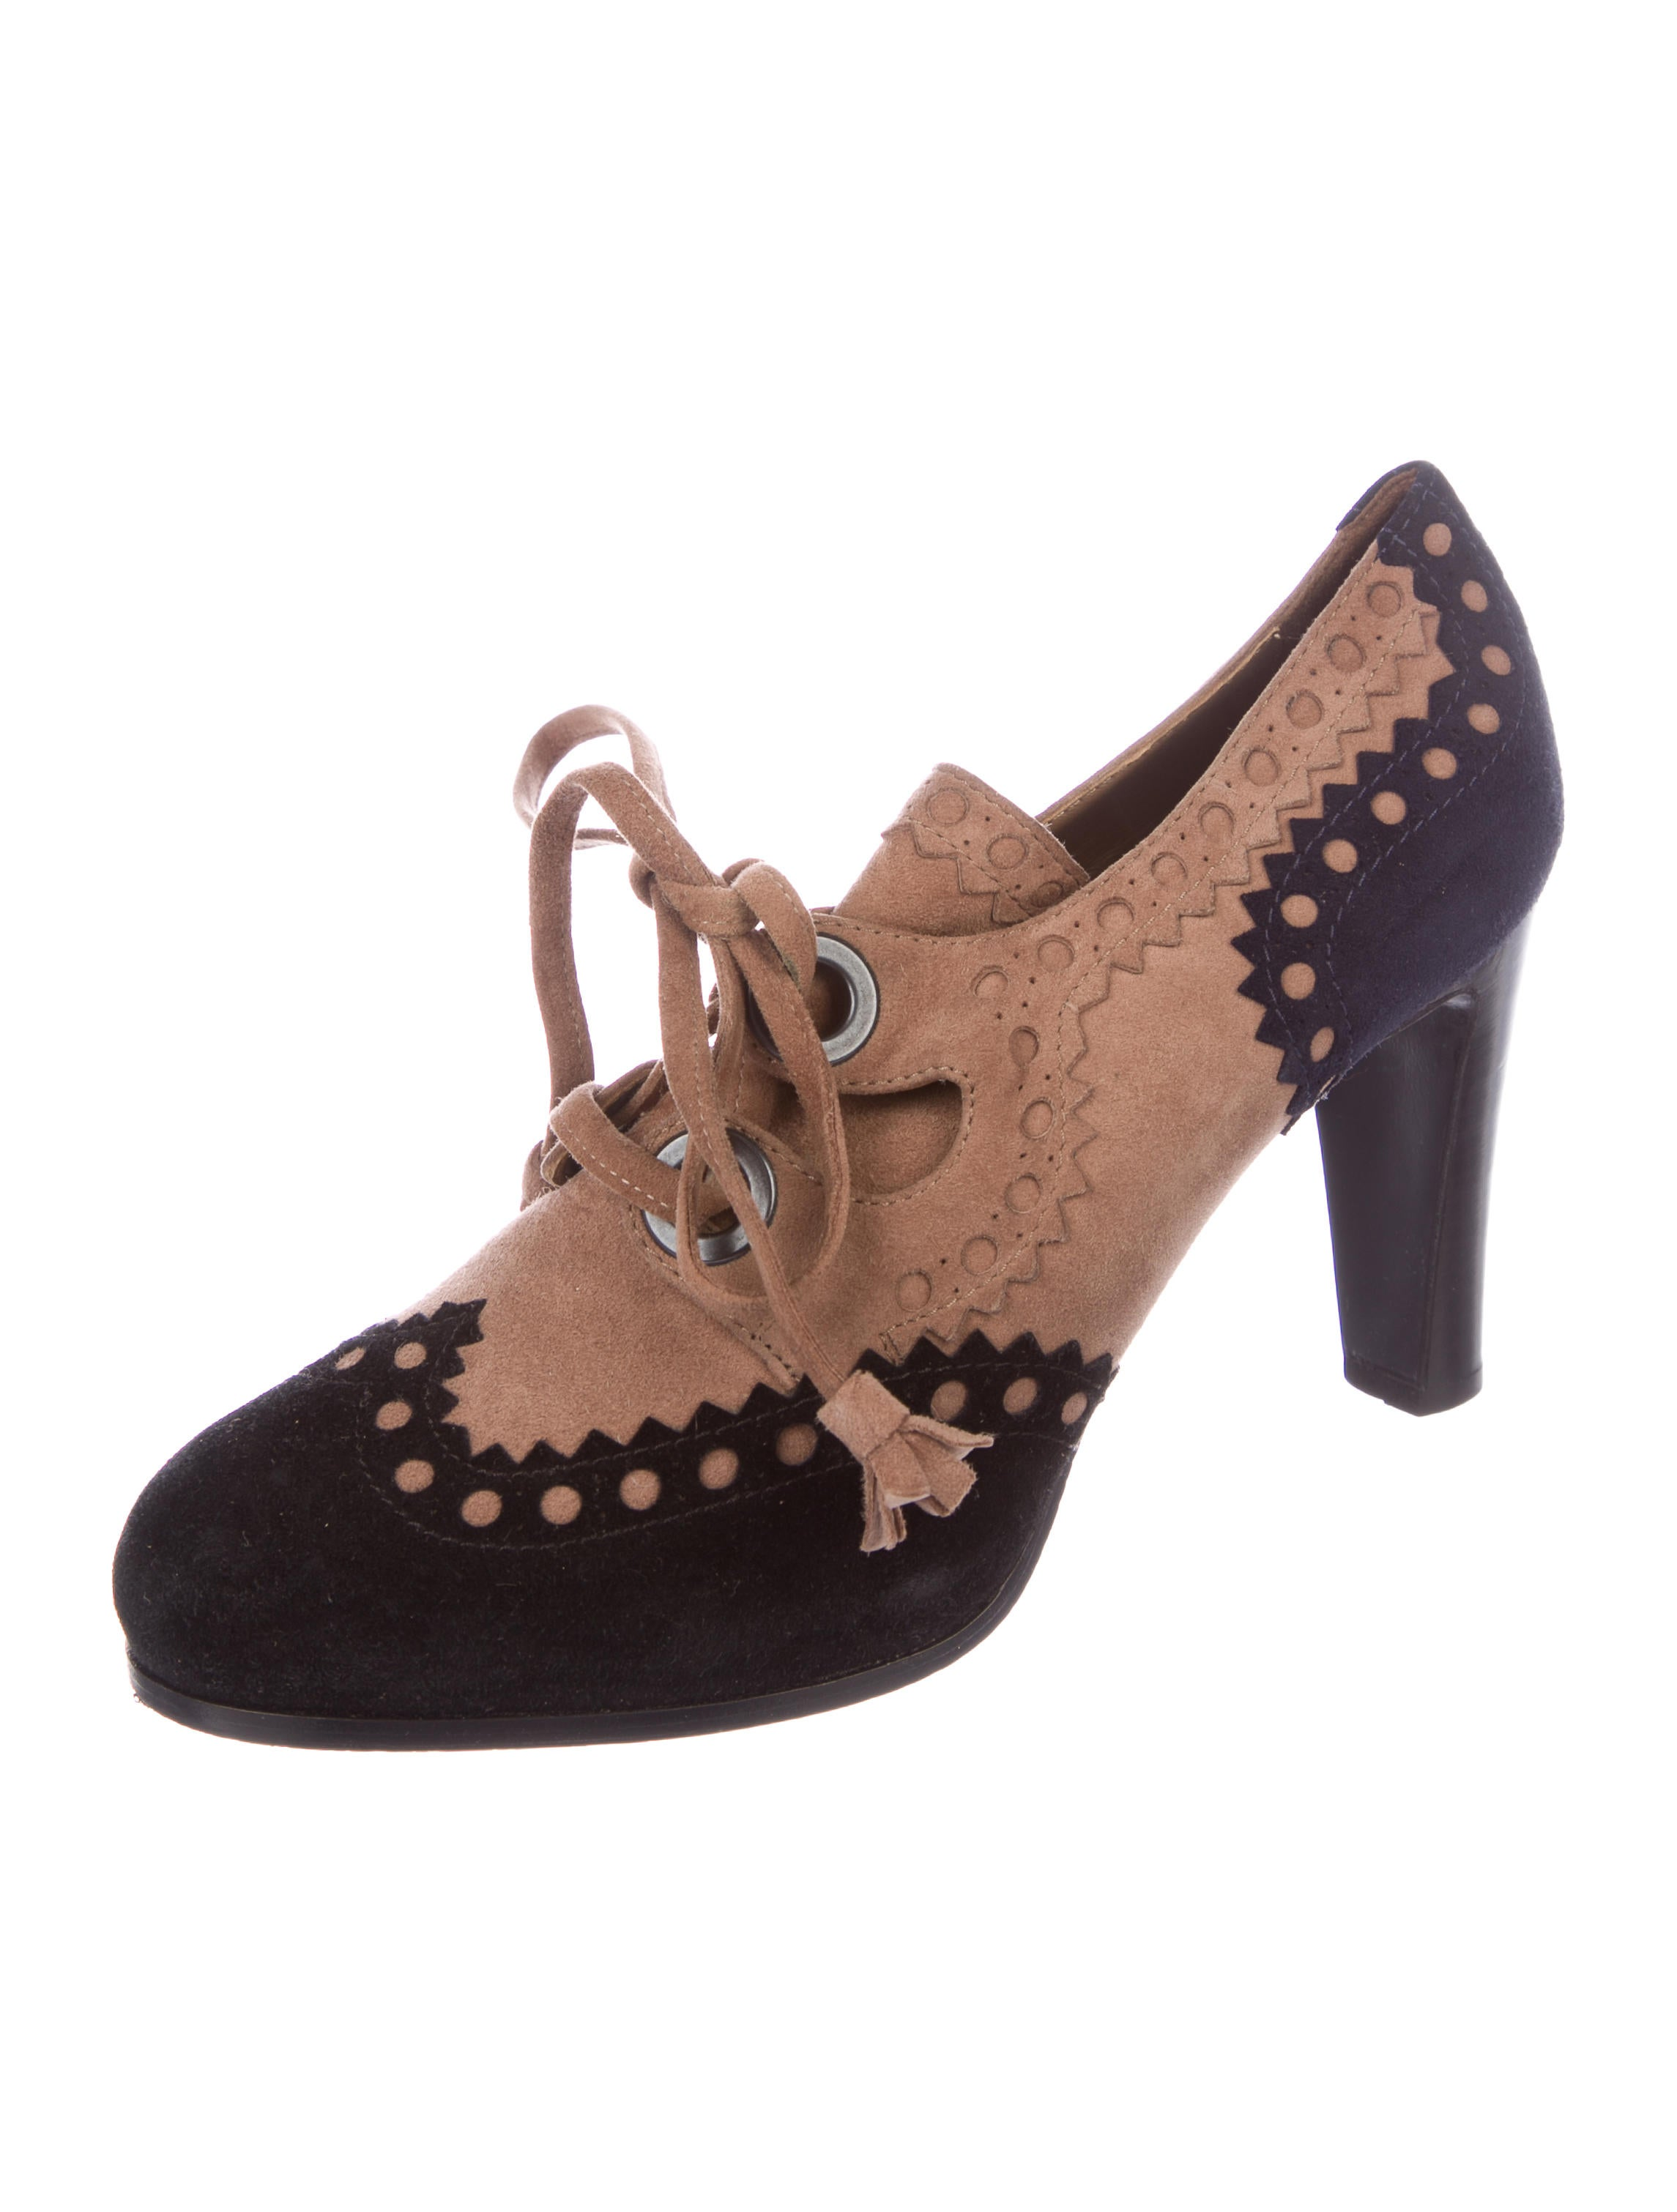 cheap shop offer Hermès Brogue Suede Booties new cheap online discount eastbay ny9EnQBV